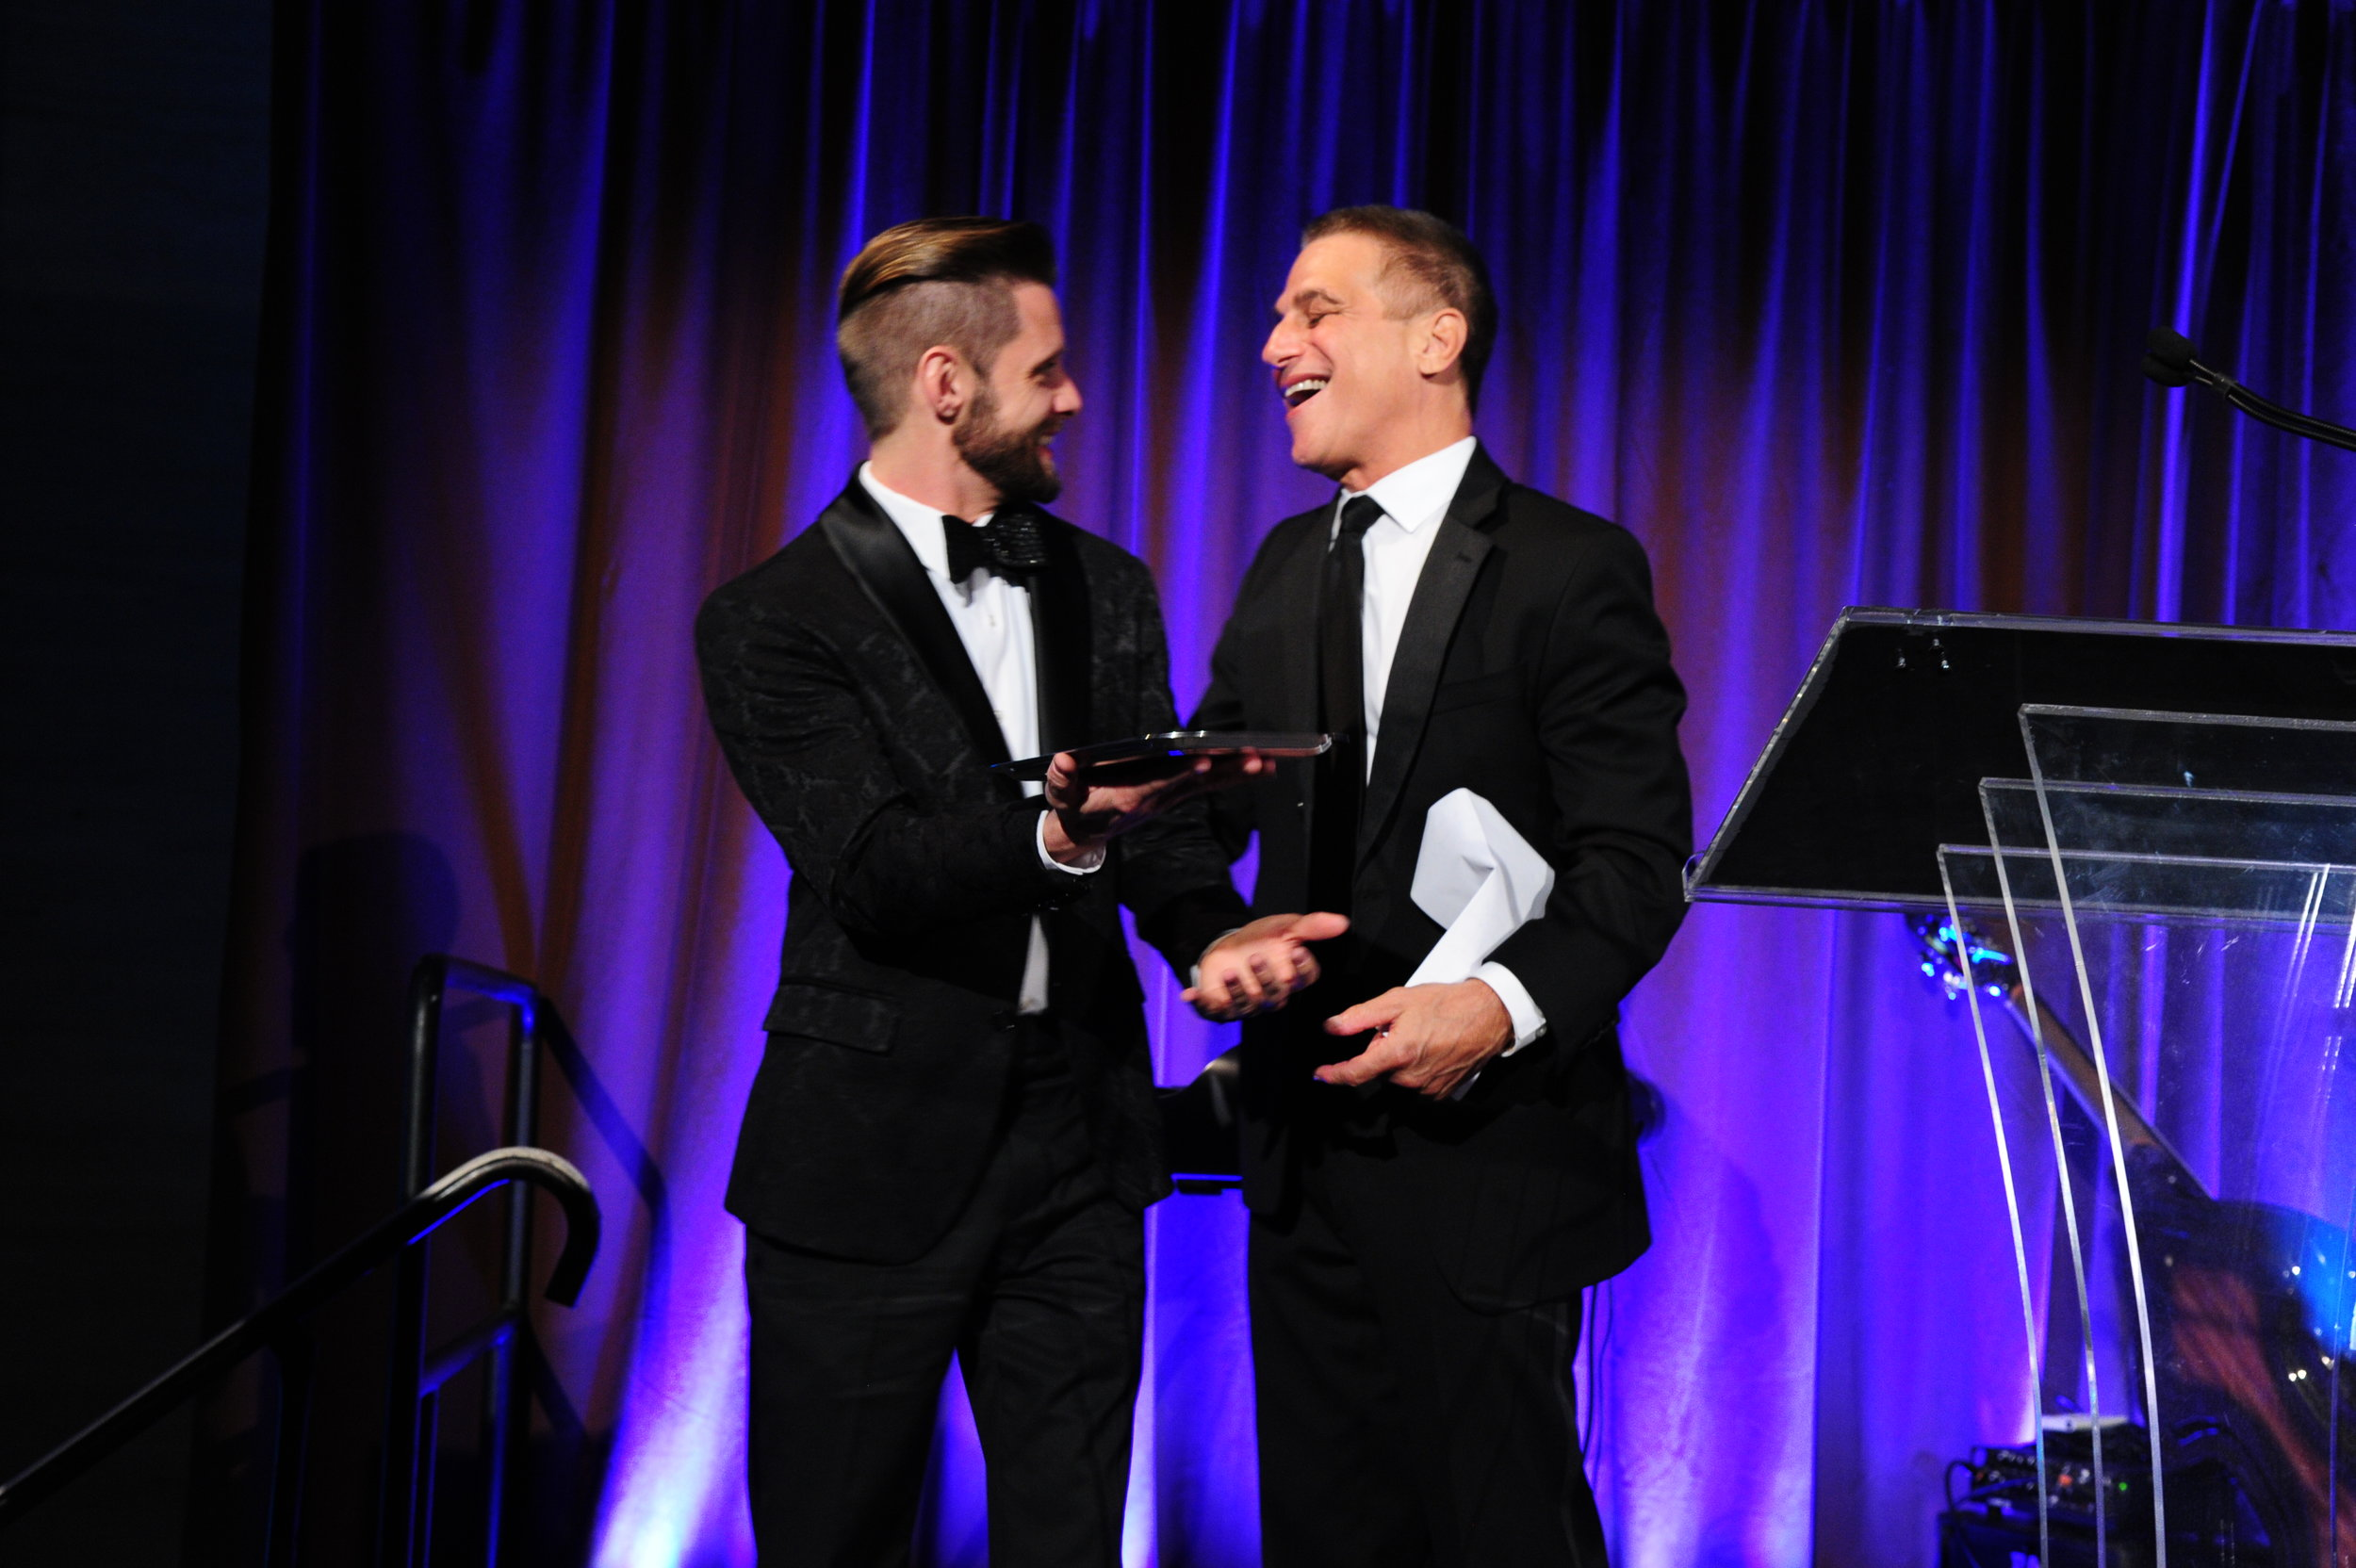 Tony Danza presents Danny Pintauro with award at Aid for AIDS Gala in NYC